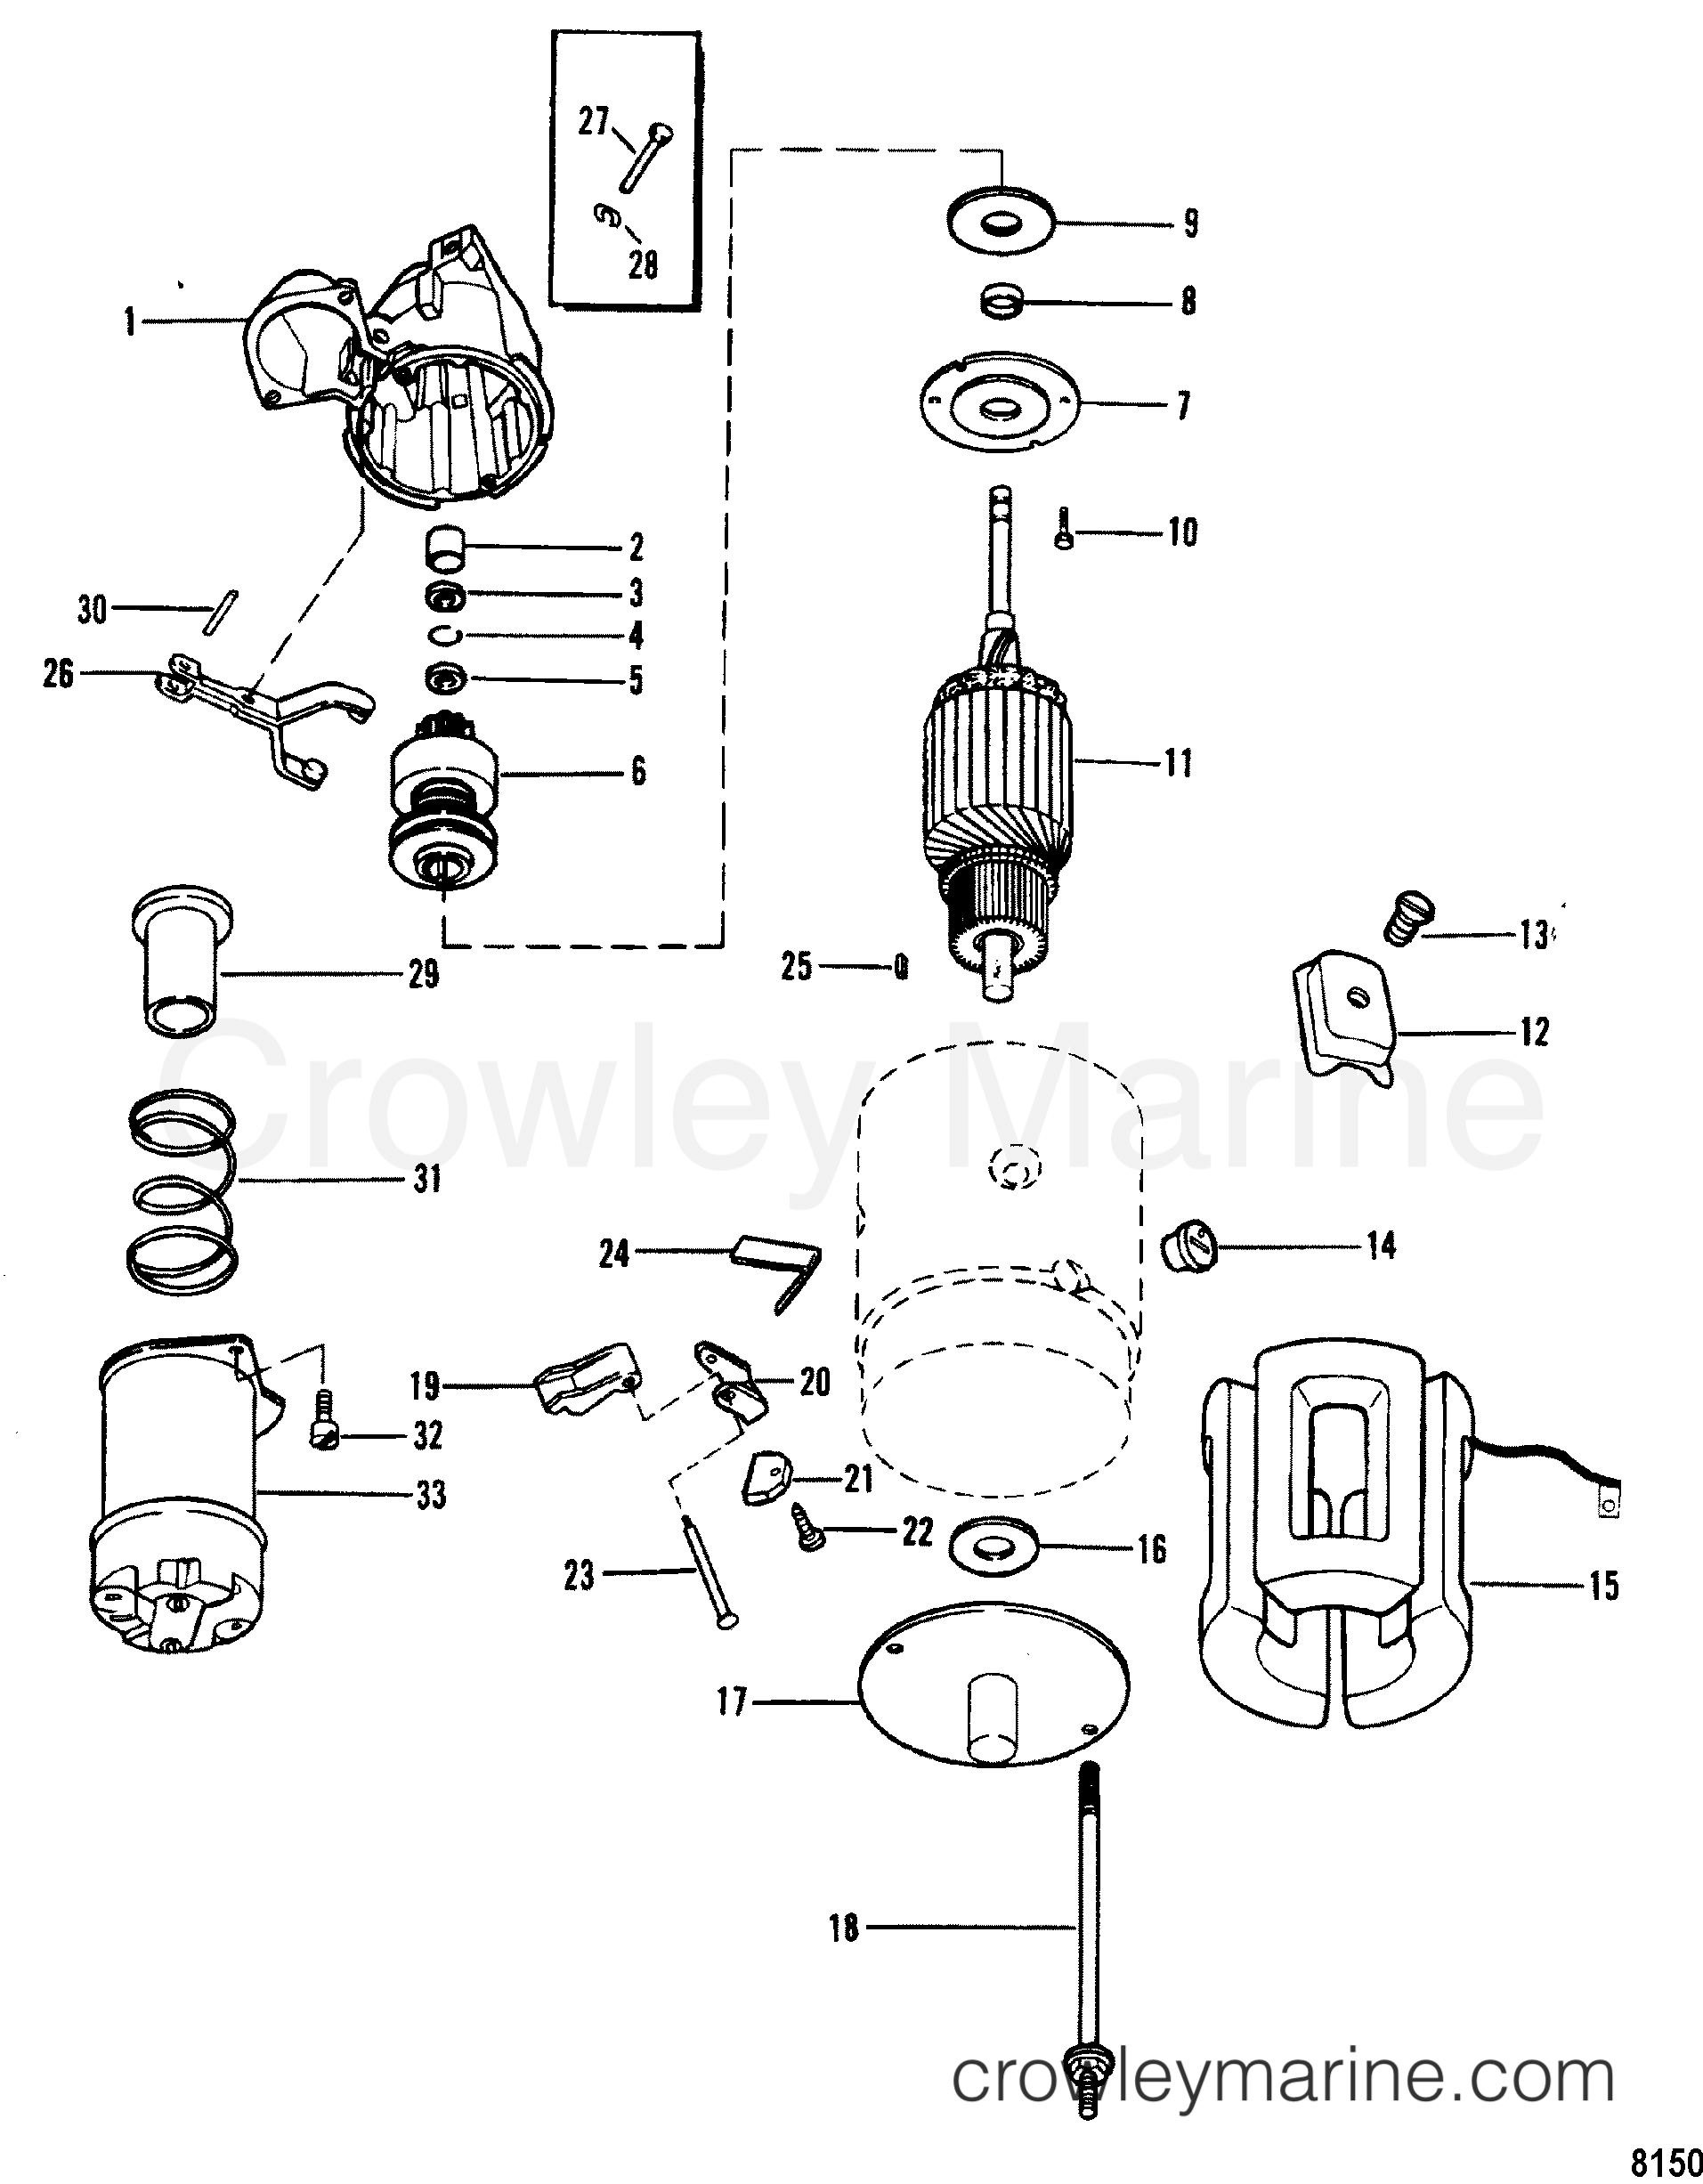 Mercruiser 30 Engine Distributor Diagram Electrical Wiring Diagrams Starter Motordelco Remy 1998317 1990 3 0l Alpha I Ford Taurus